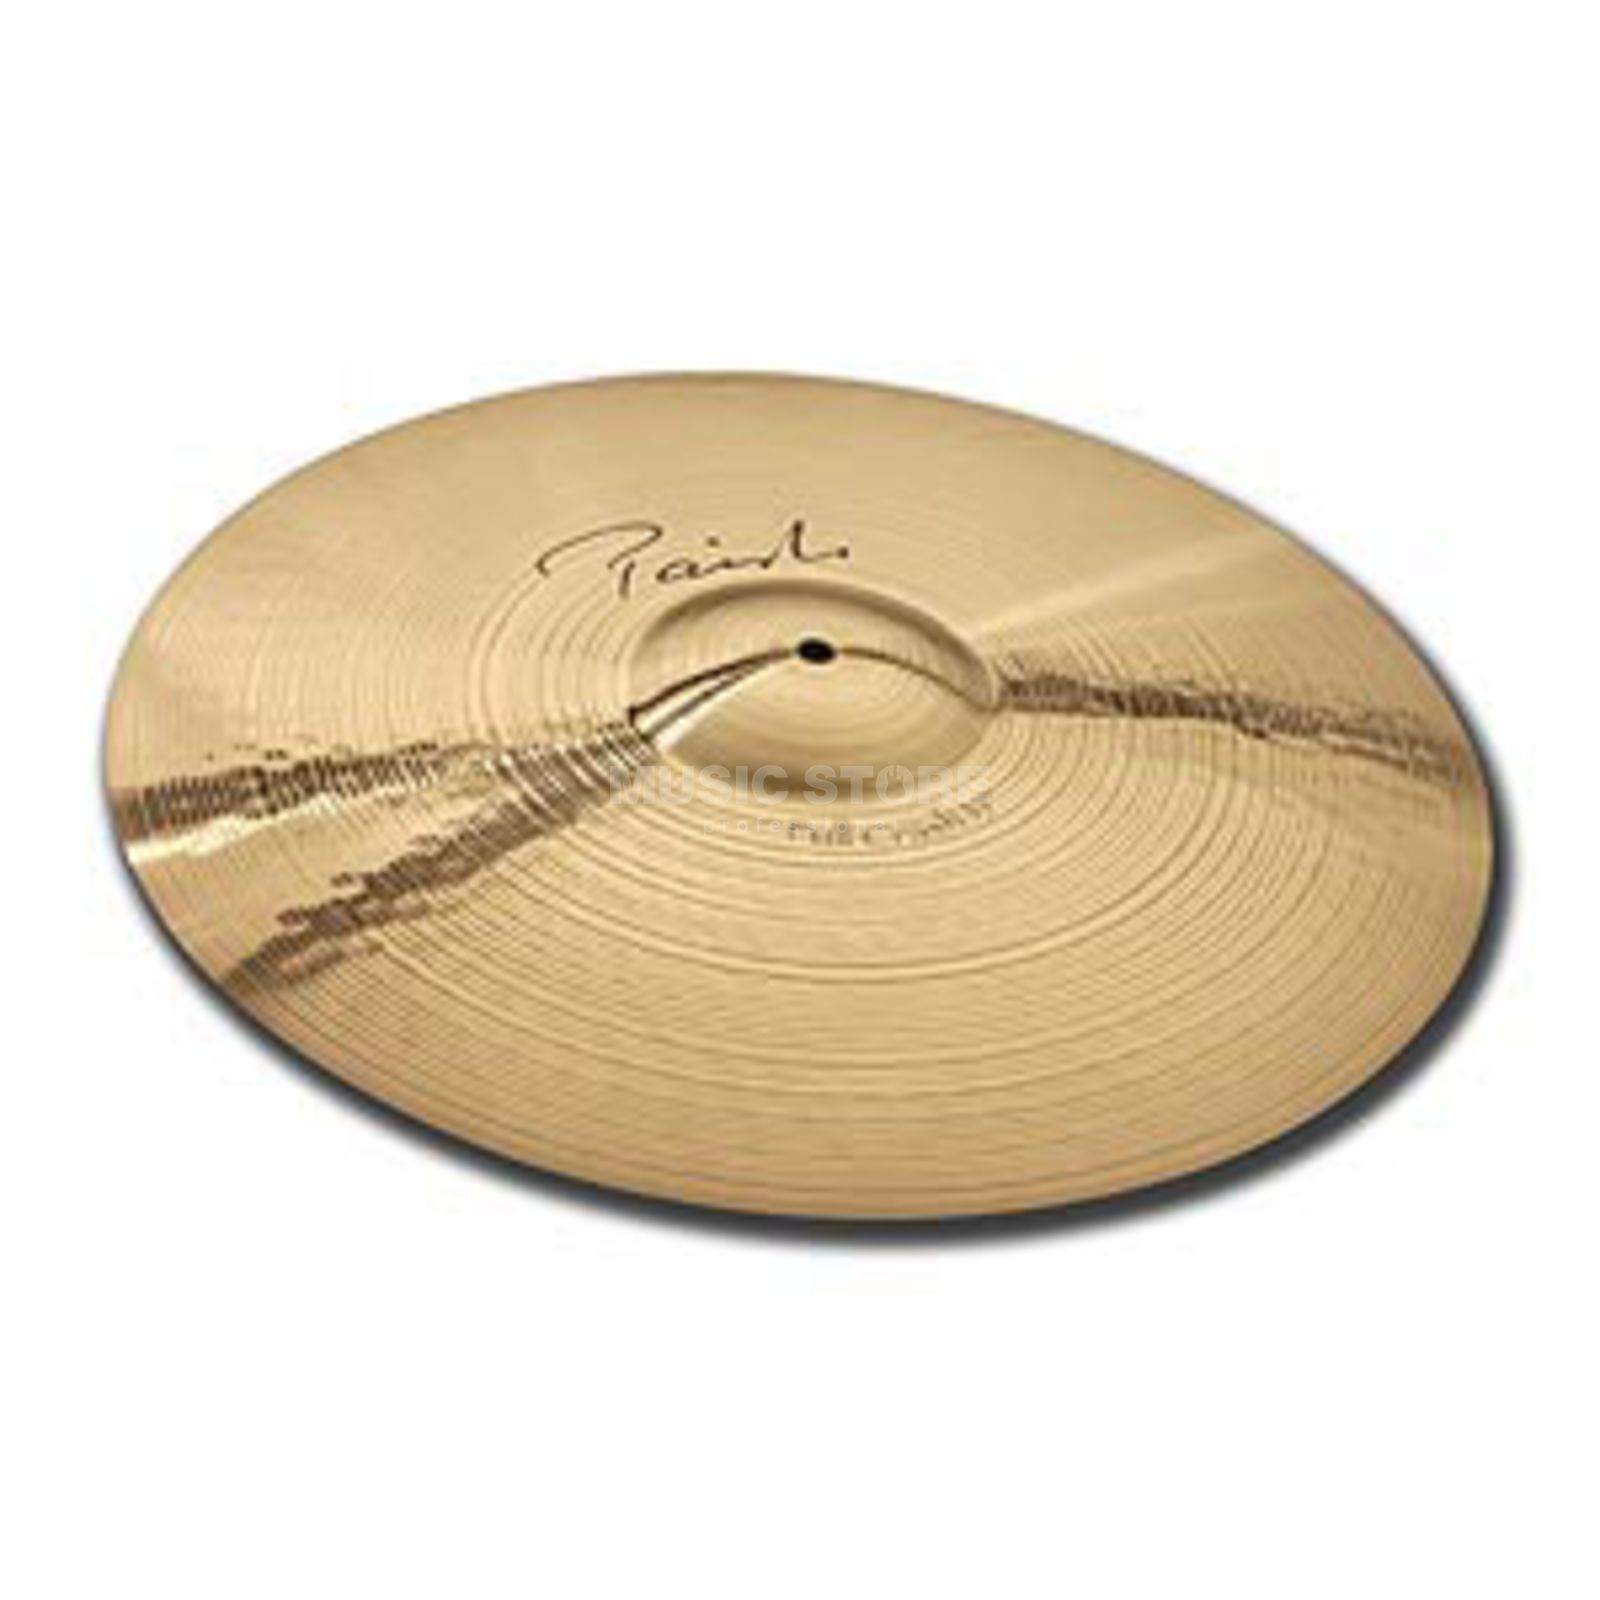 "Paiste Signature Full Crash 18"", Reflector Finish Produktbild"